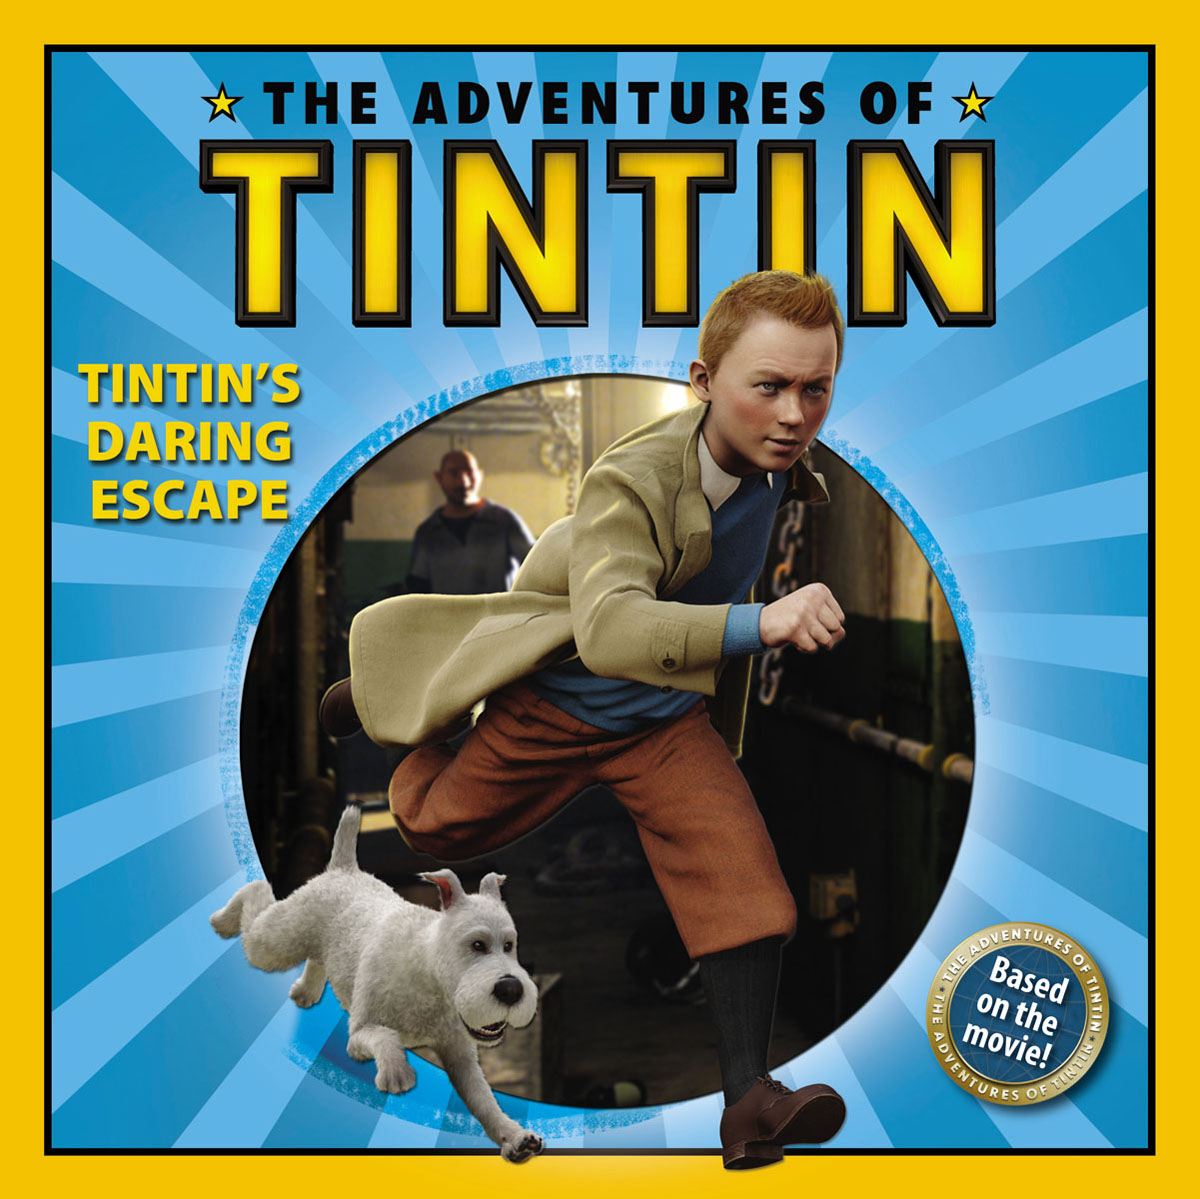 The Adventures of Tintin: Tintin's Daring Escape dickens c a message from the sea